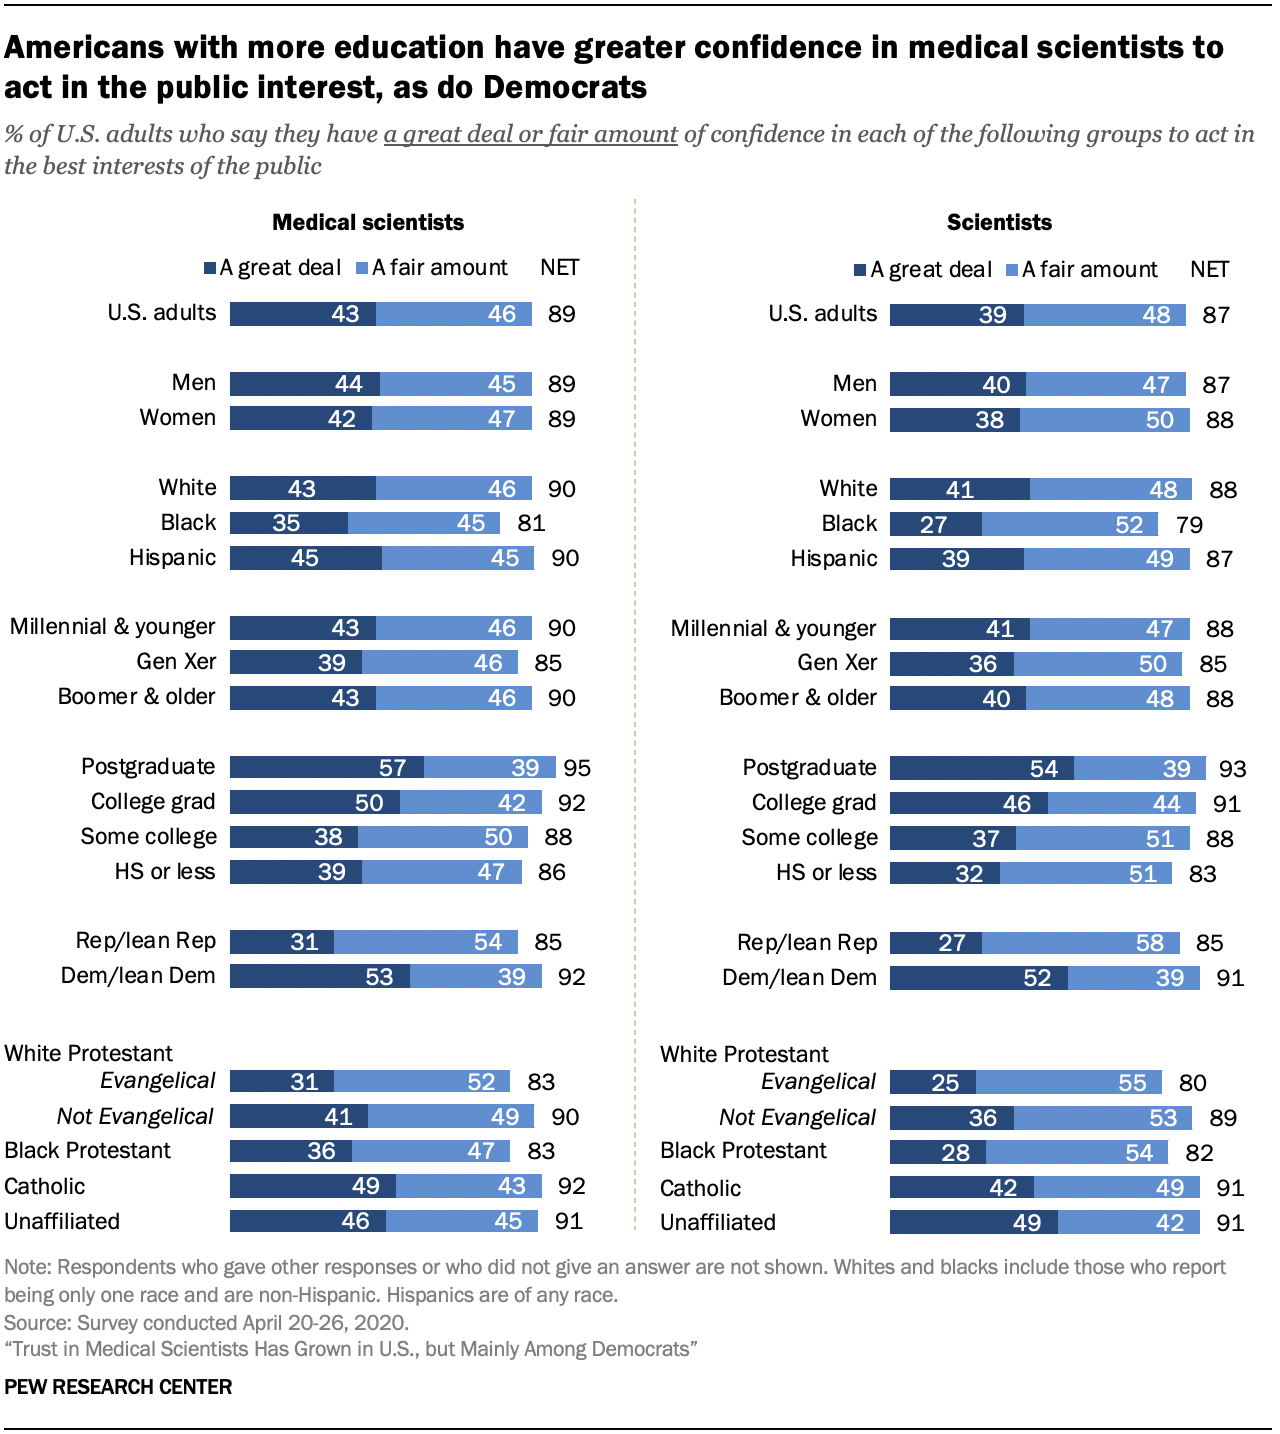 Chart shows Americans with more education have greater confidence in medical scientists to act in the public interest, as do Democrats